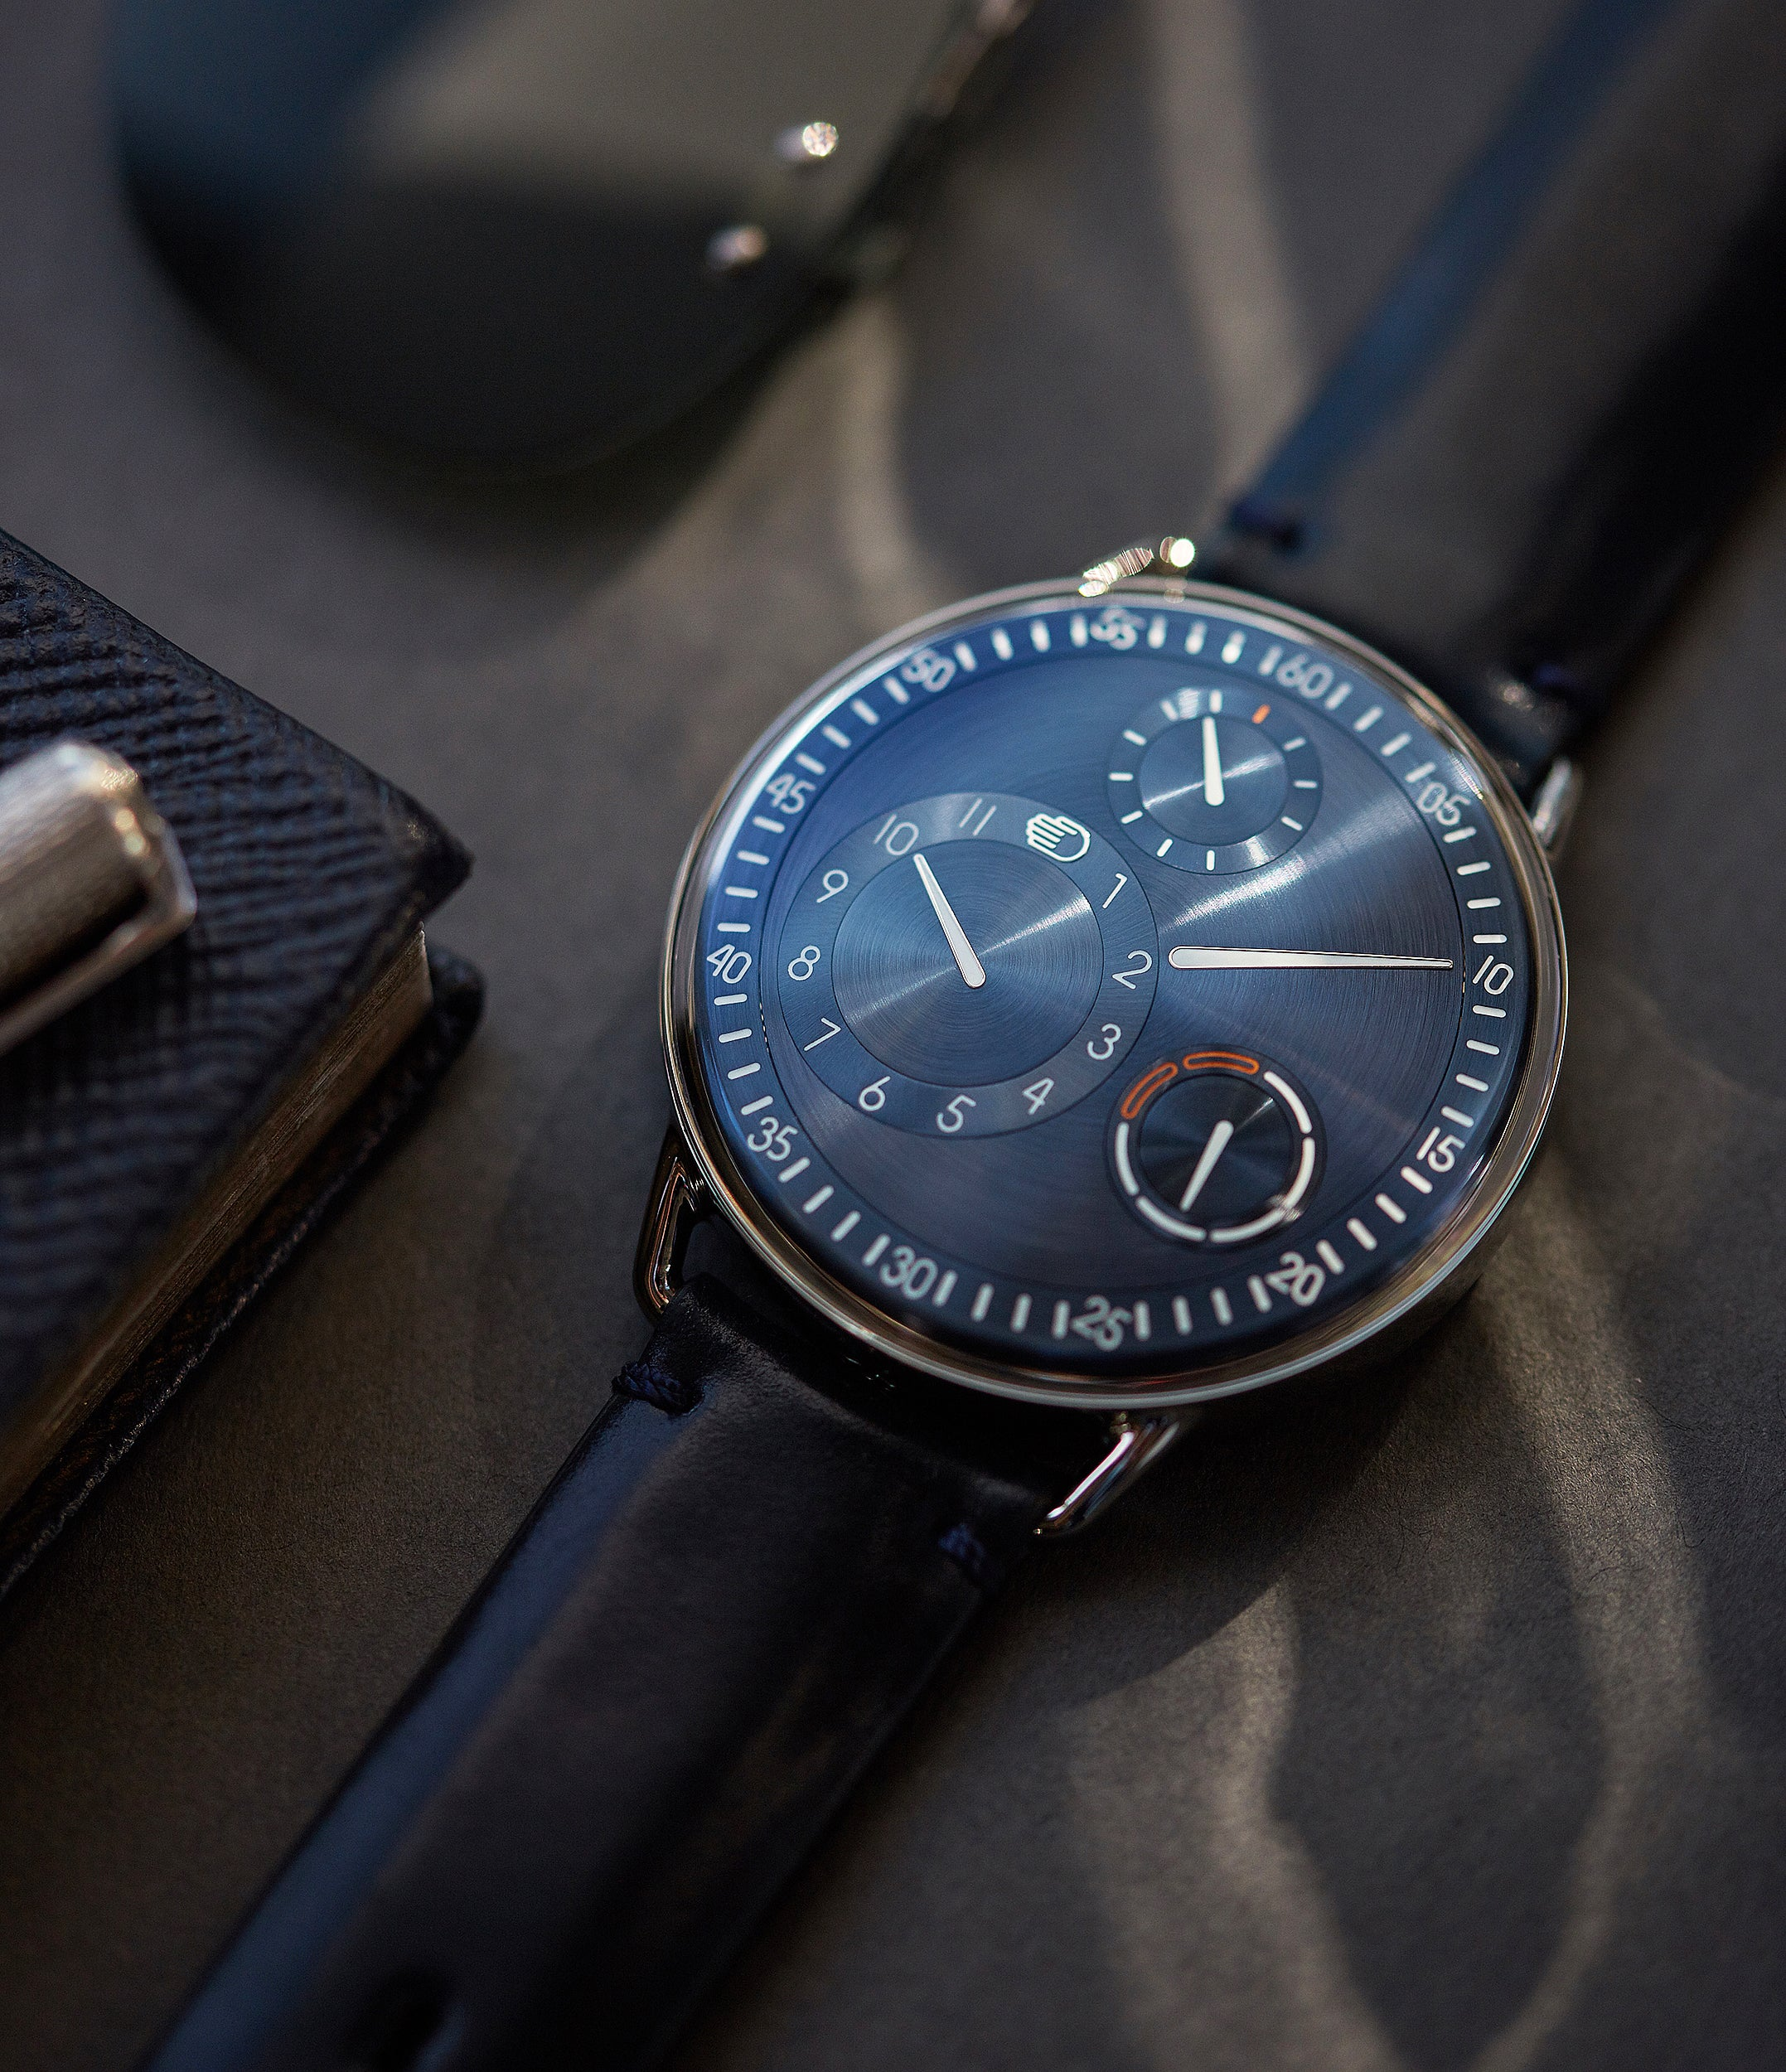 selling Ressence Type 1N titanium blue dial independent watchmaker watch for sale online at A Collected Man London UK specialist of rare watches